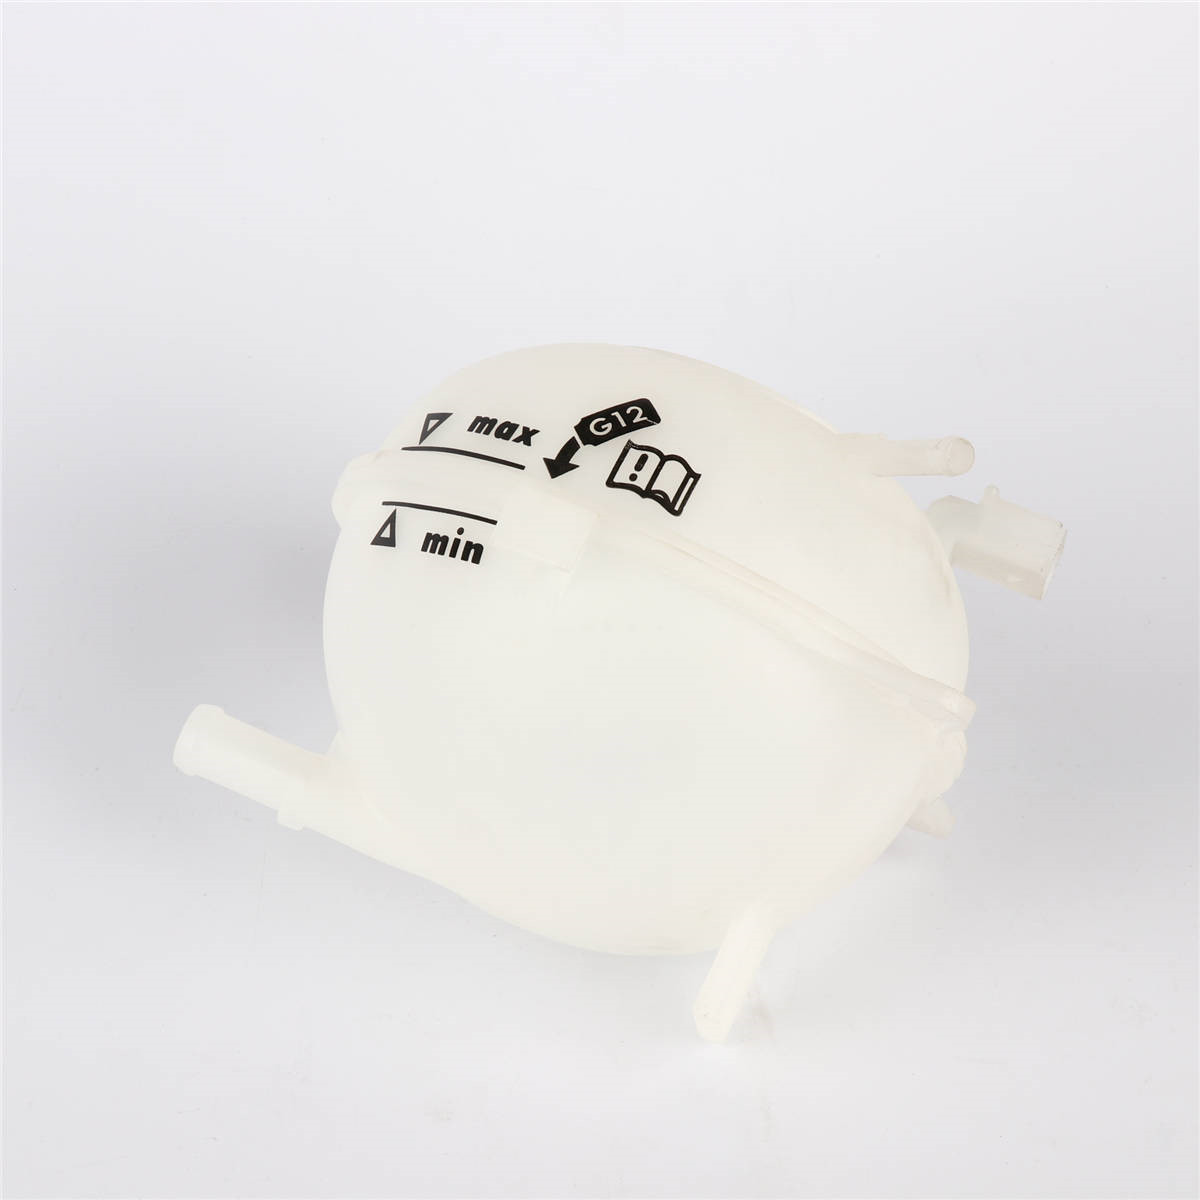 [해외]폭스 바겐 Jetta Mk2 L6R0 121 407 용 새로운 1pcs OEM 냉각수 저장 탱크 확장 탱크/New 1pcs OEM Coolant Reservoir Expansion Tank For VW Jetta Mk2 L6R0 121 407